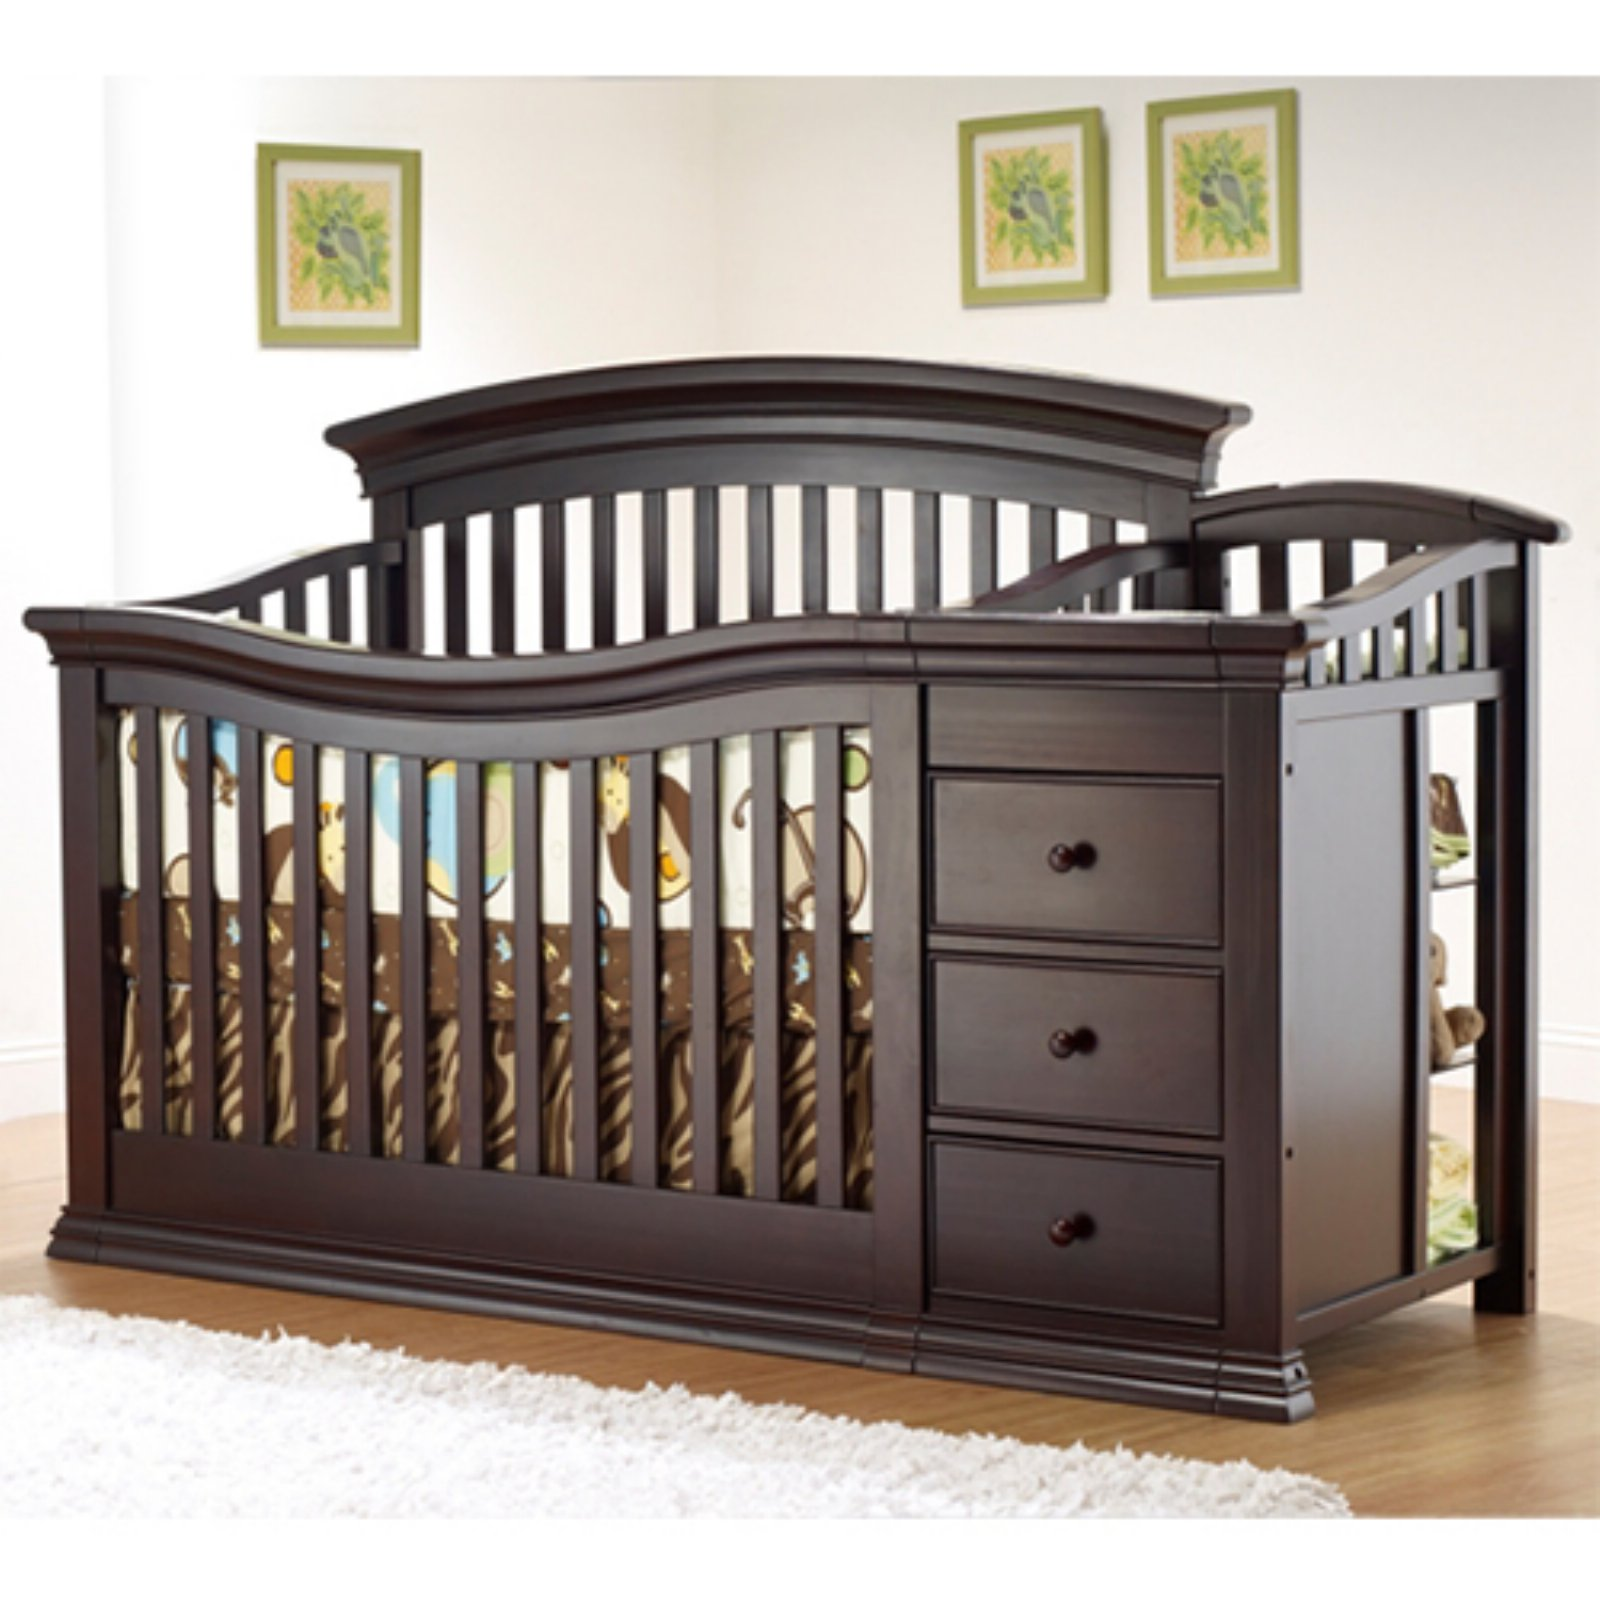 Sorelle Verona 4 in 1 Convertible Crib & Changer